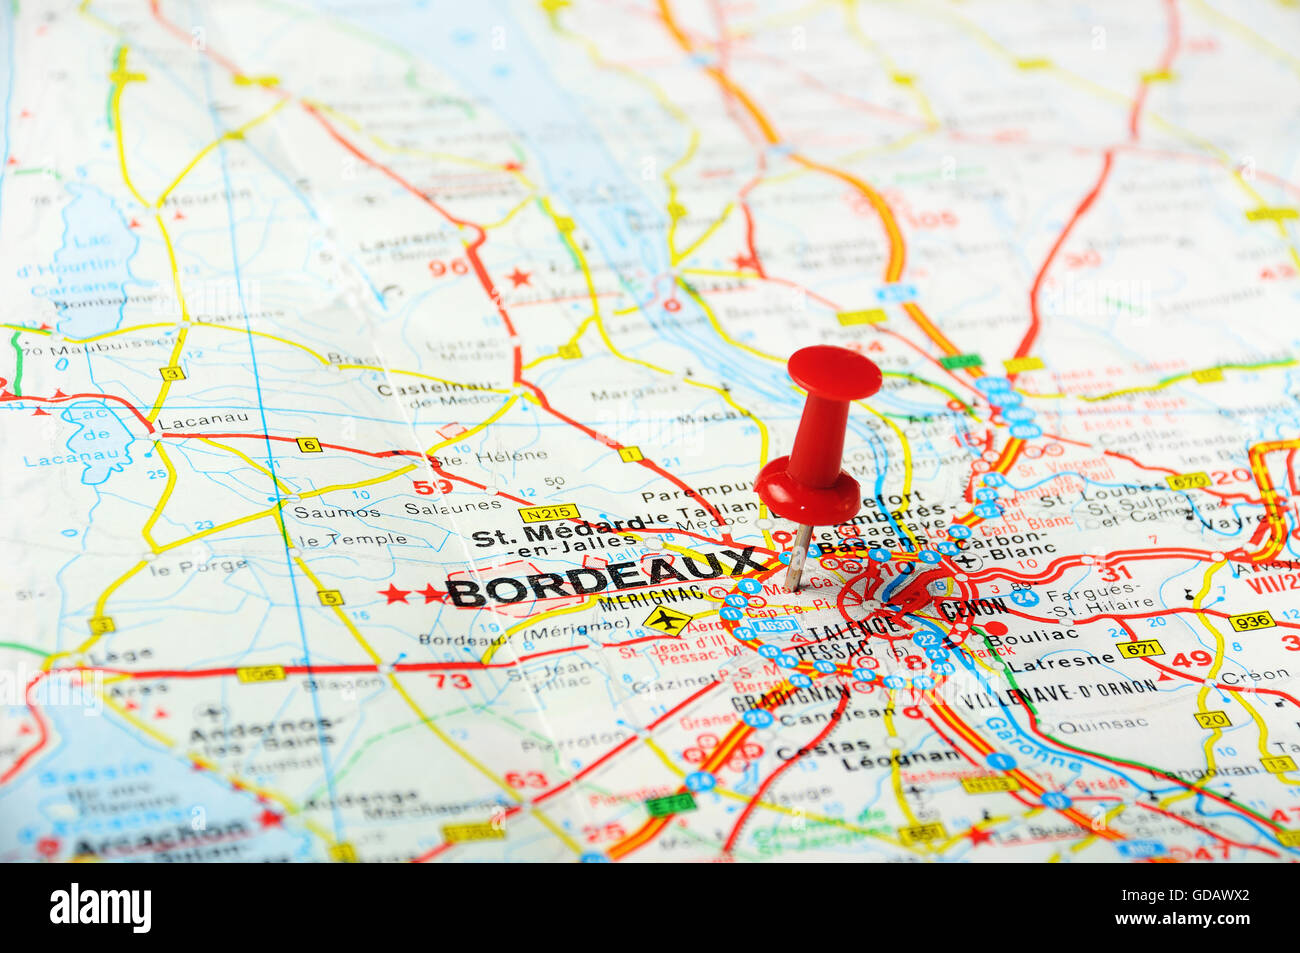 Bordeaux Map Of France.Red Push Pin Pointing At Bordeaux France Map Stock Photo